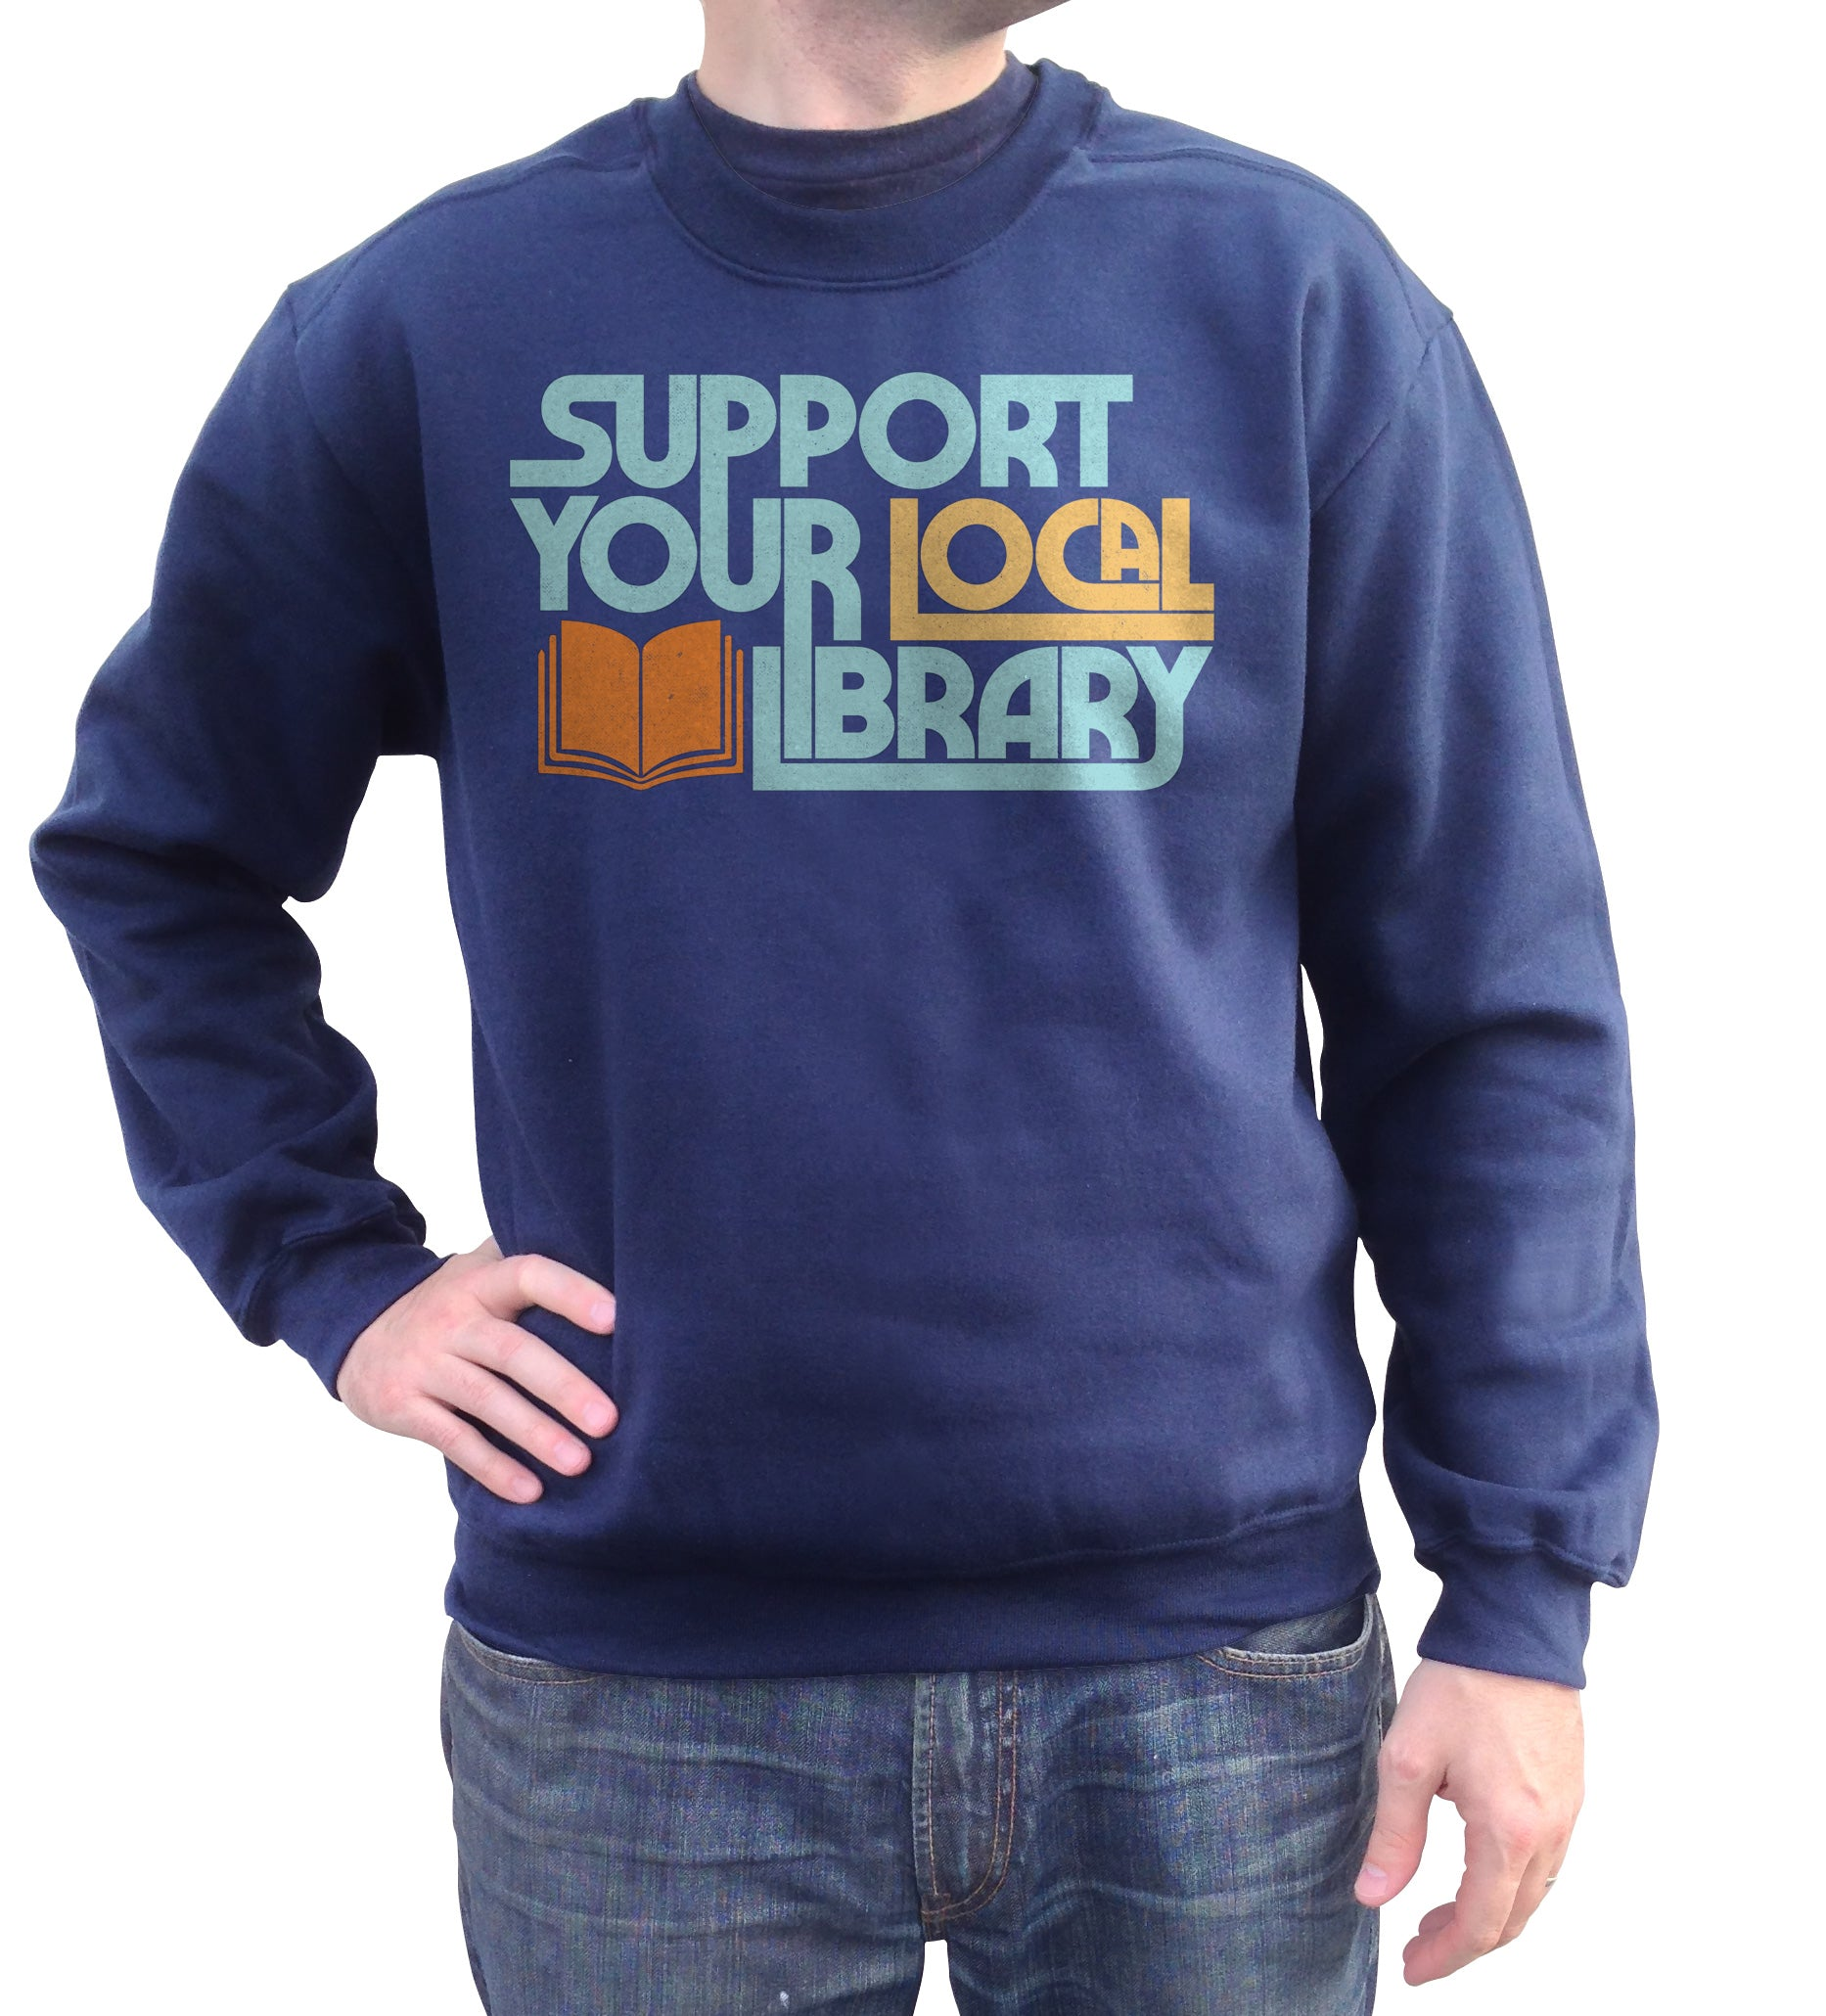 Unisex Support Your Local Library Sweatshirt